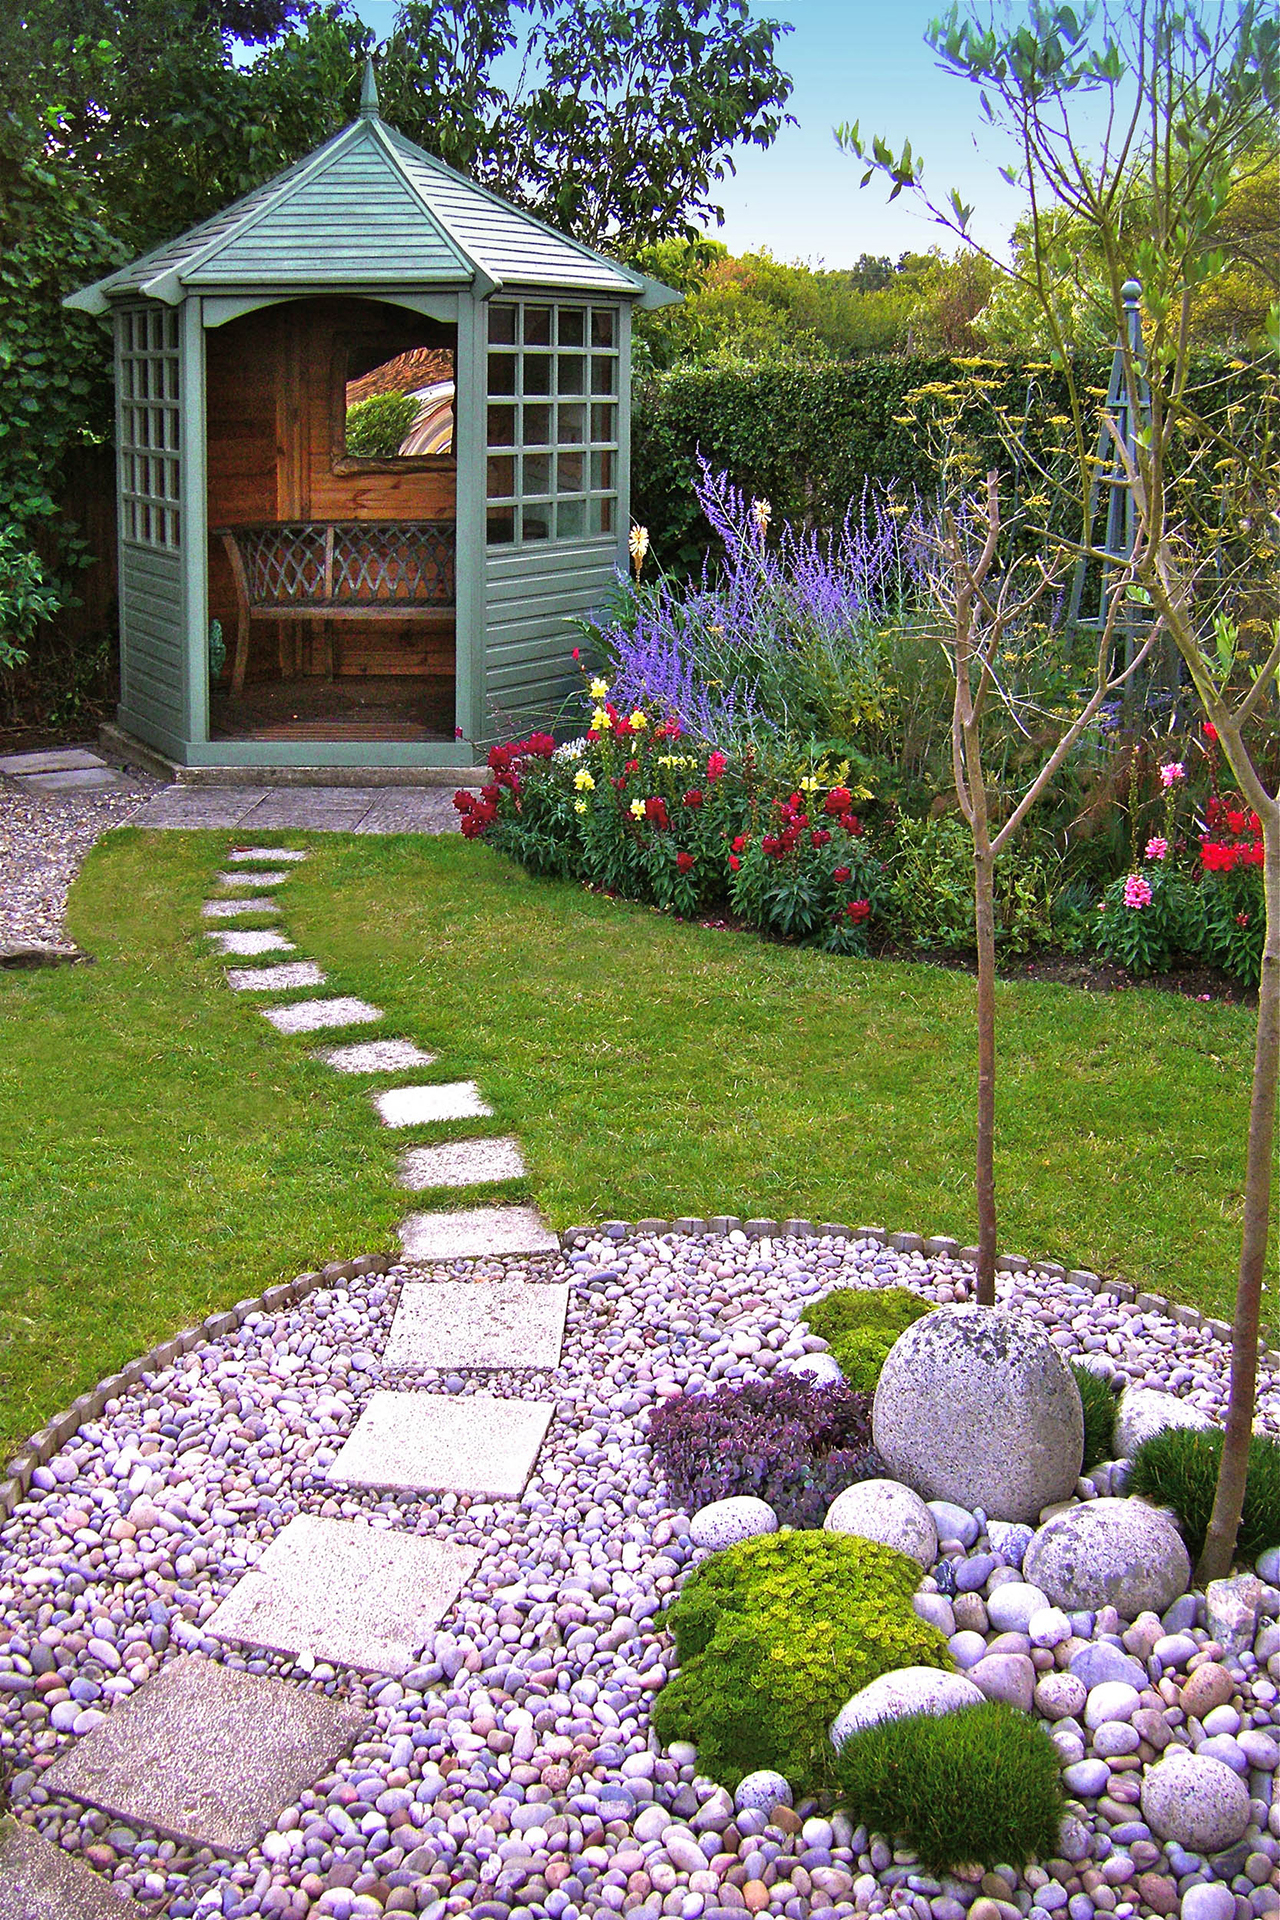 50 Best Backyard Landscaping Ideas And Designs In 2019 within 13 Some of the Coolest Tricks of How to Improve Backyard Renovation Ideas